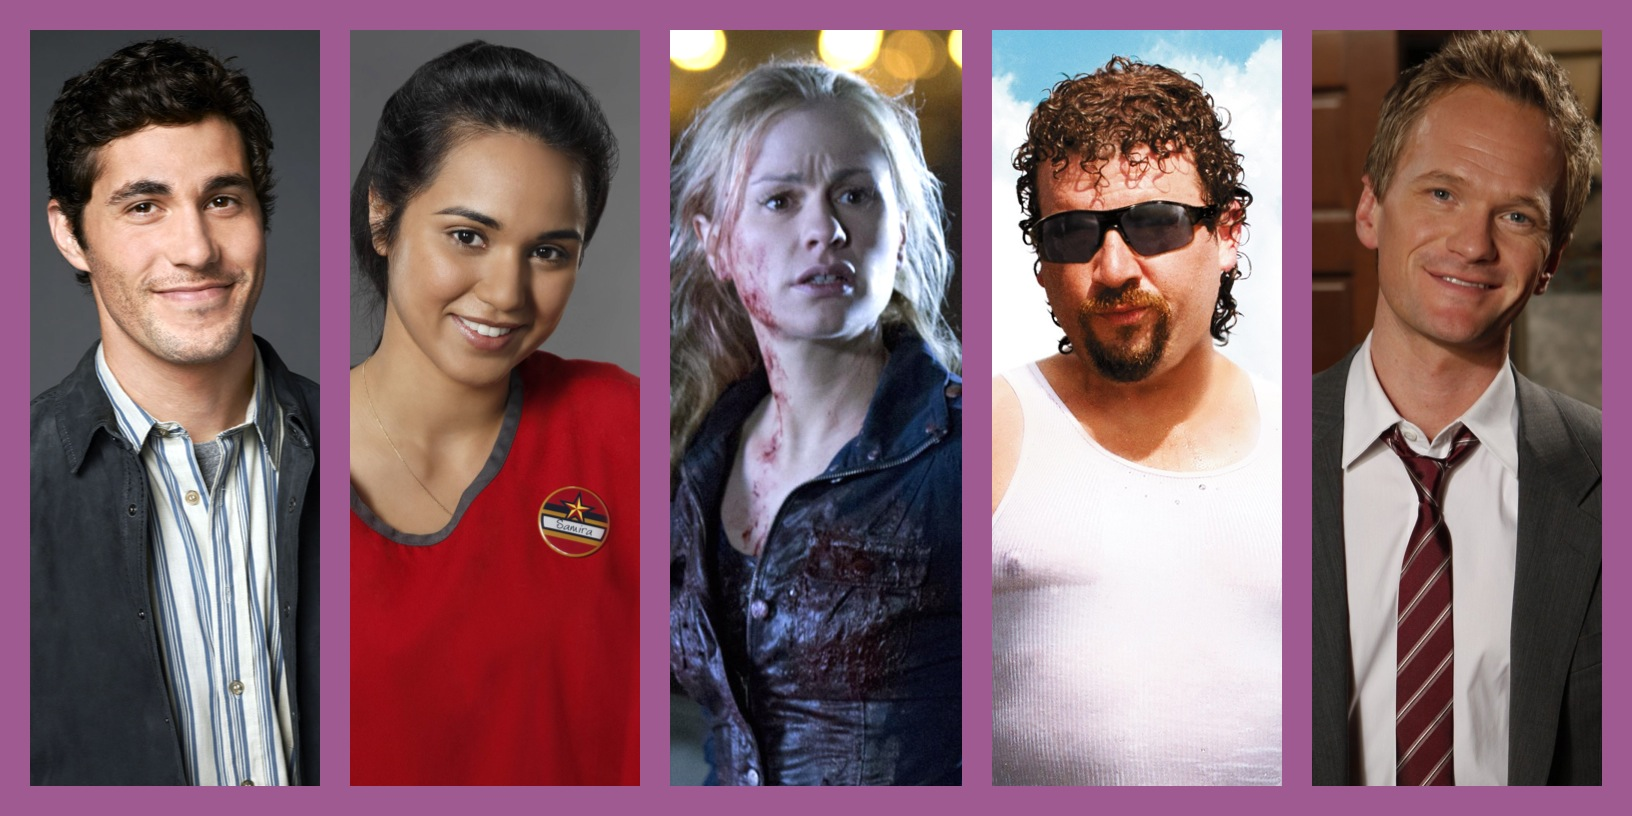 139 Ending or Cancelled TV Shows for the 2013-14 Season - canceled